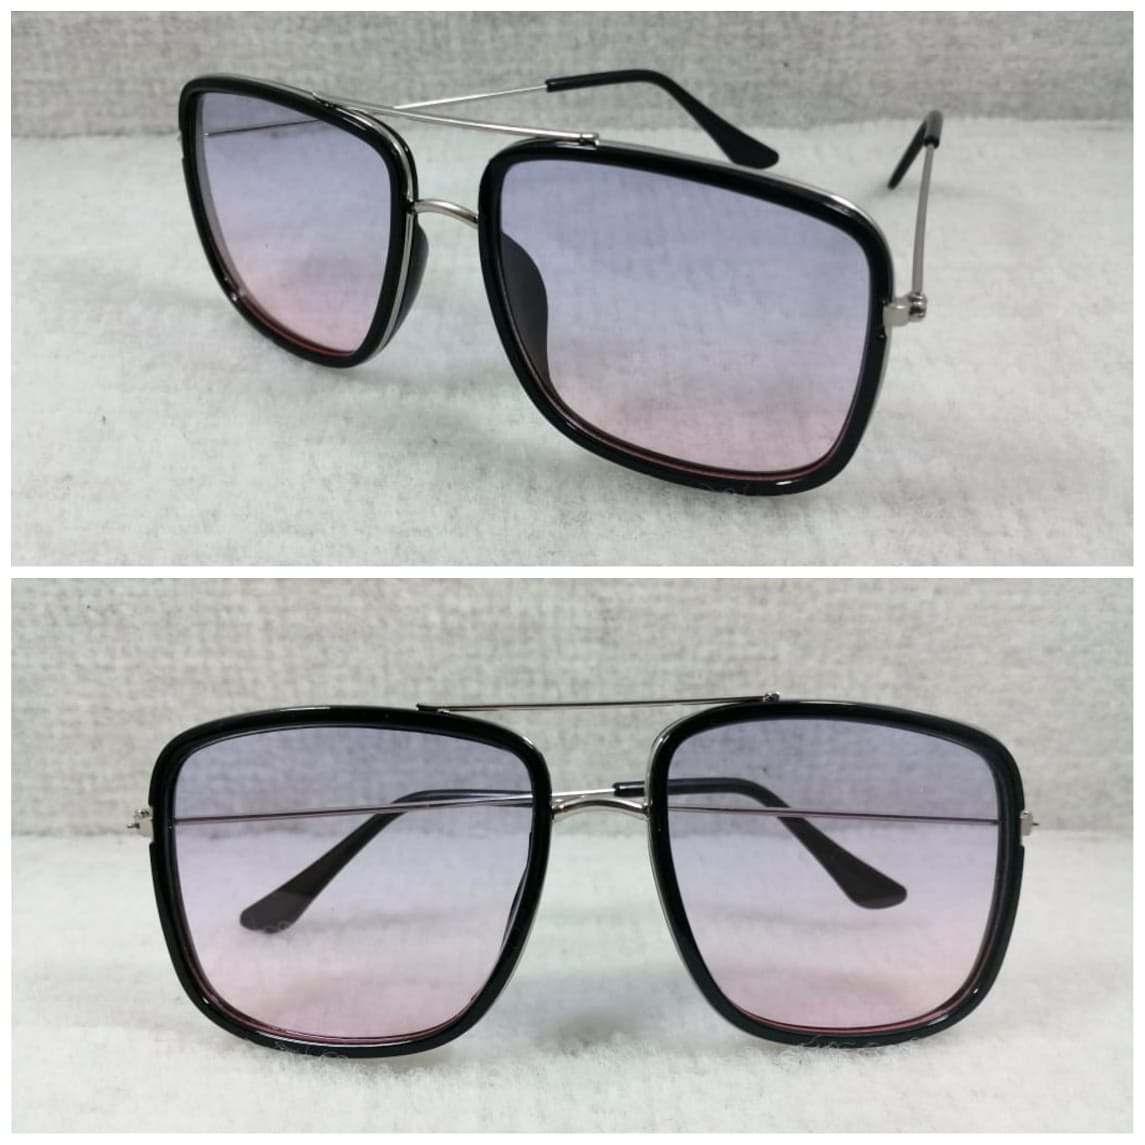 Iron Man Glasses Tony Stark Sunglasses Peter Parker Edith Glasses With Leatherite Cover Box Buy Online At Best Prices In Pakistan Daraz Pk See more ideas about glasses, girls with glasses, beauty health. daraz pk